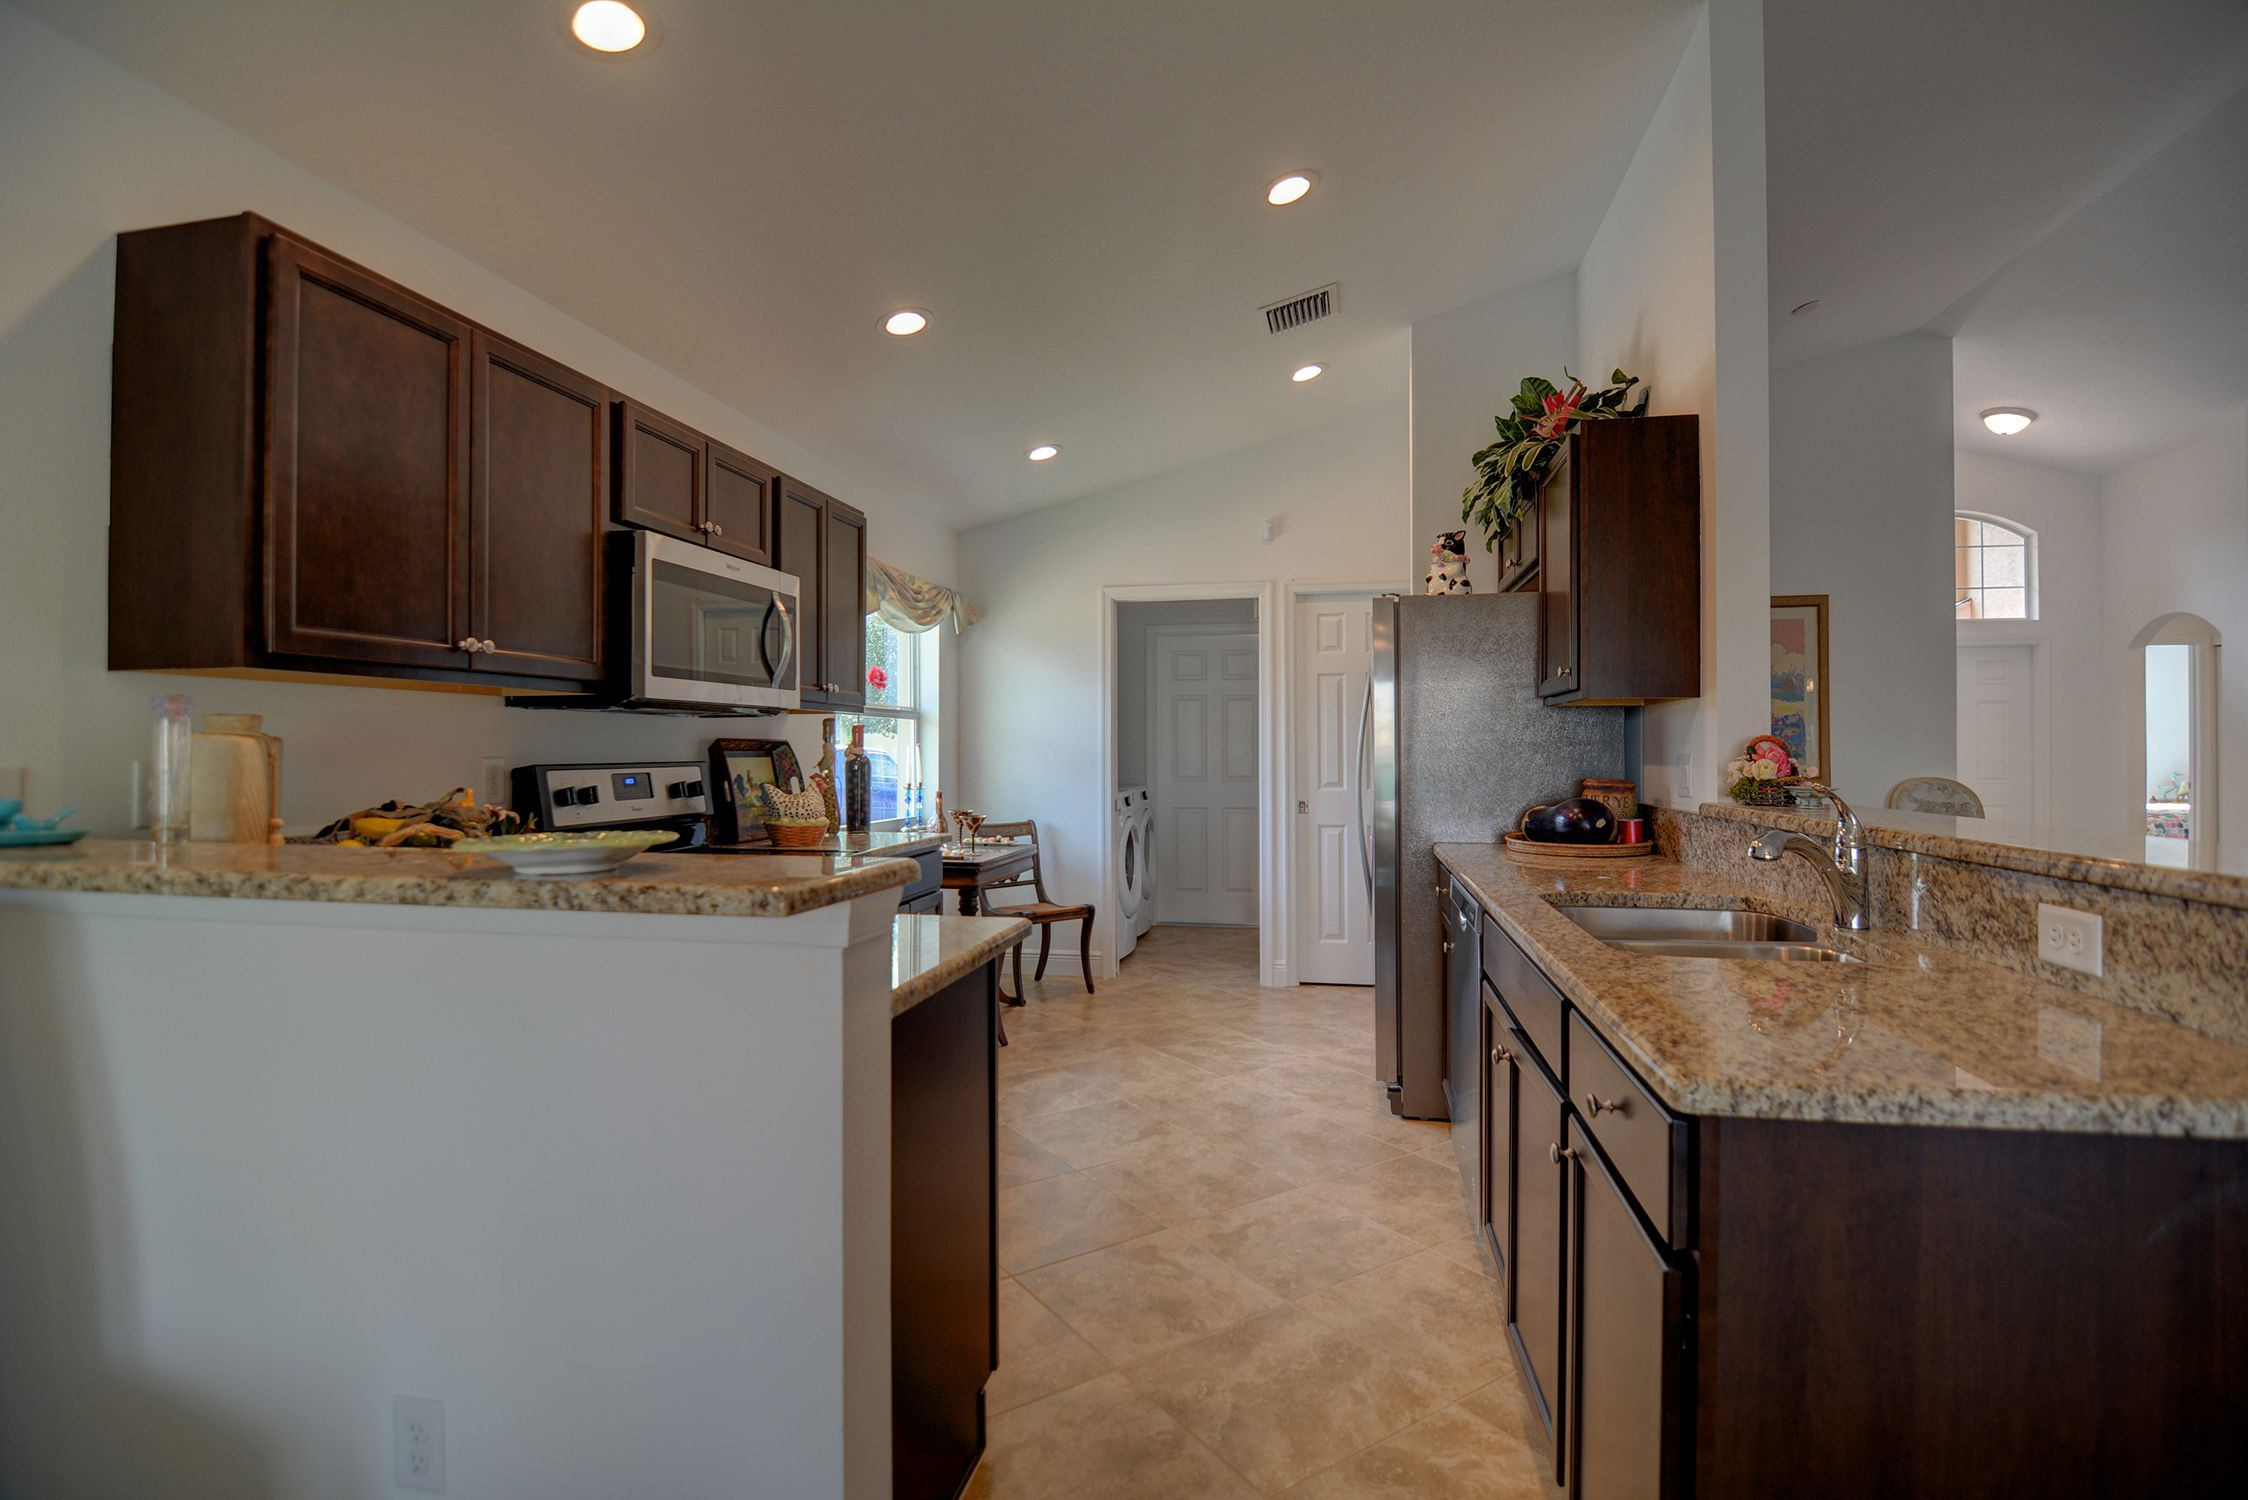 Kitchen featured in the Cayman 1763 By Renar Homes in Martin-St. Lucie-Okeechobee Counties, FL